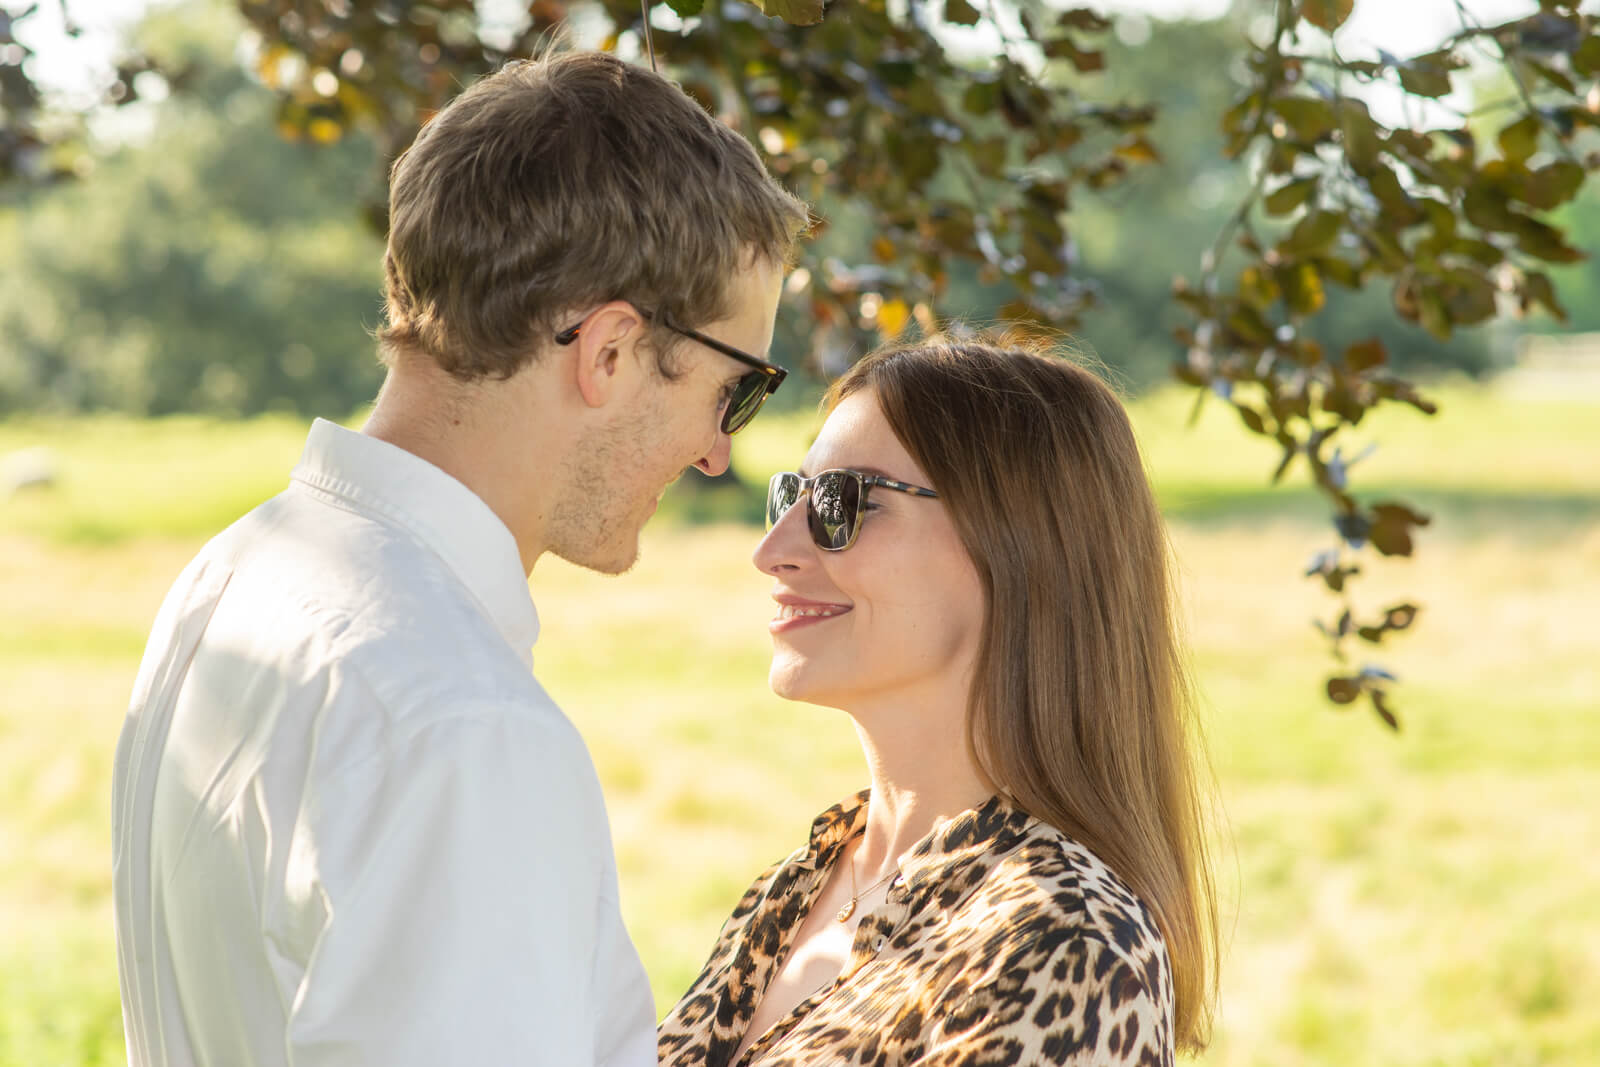 Couple in sunglasses face each other whlst standing in the shade of a tree